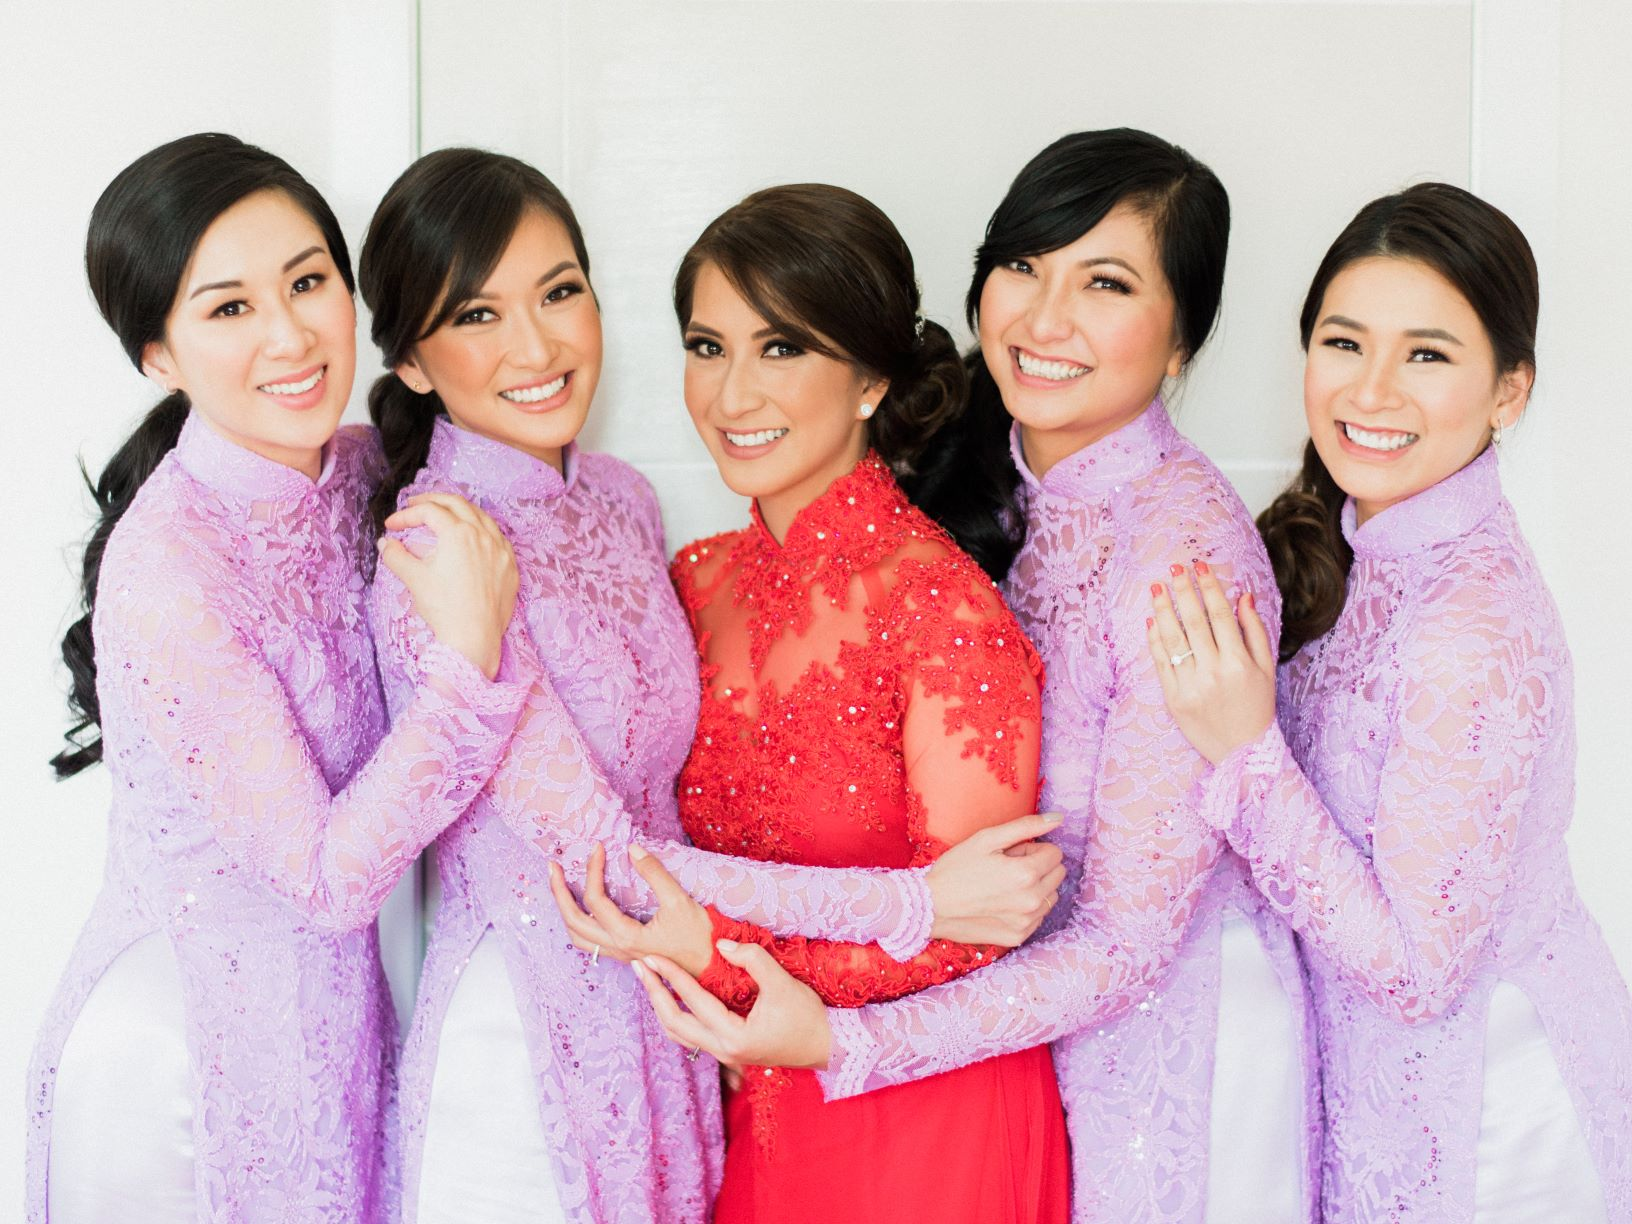 Bridesmaid Ao Dai Photo 23